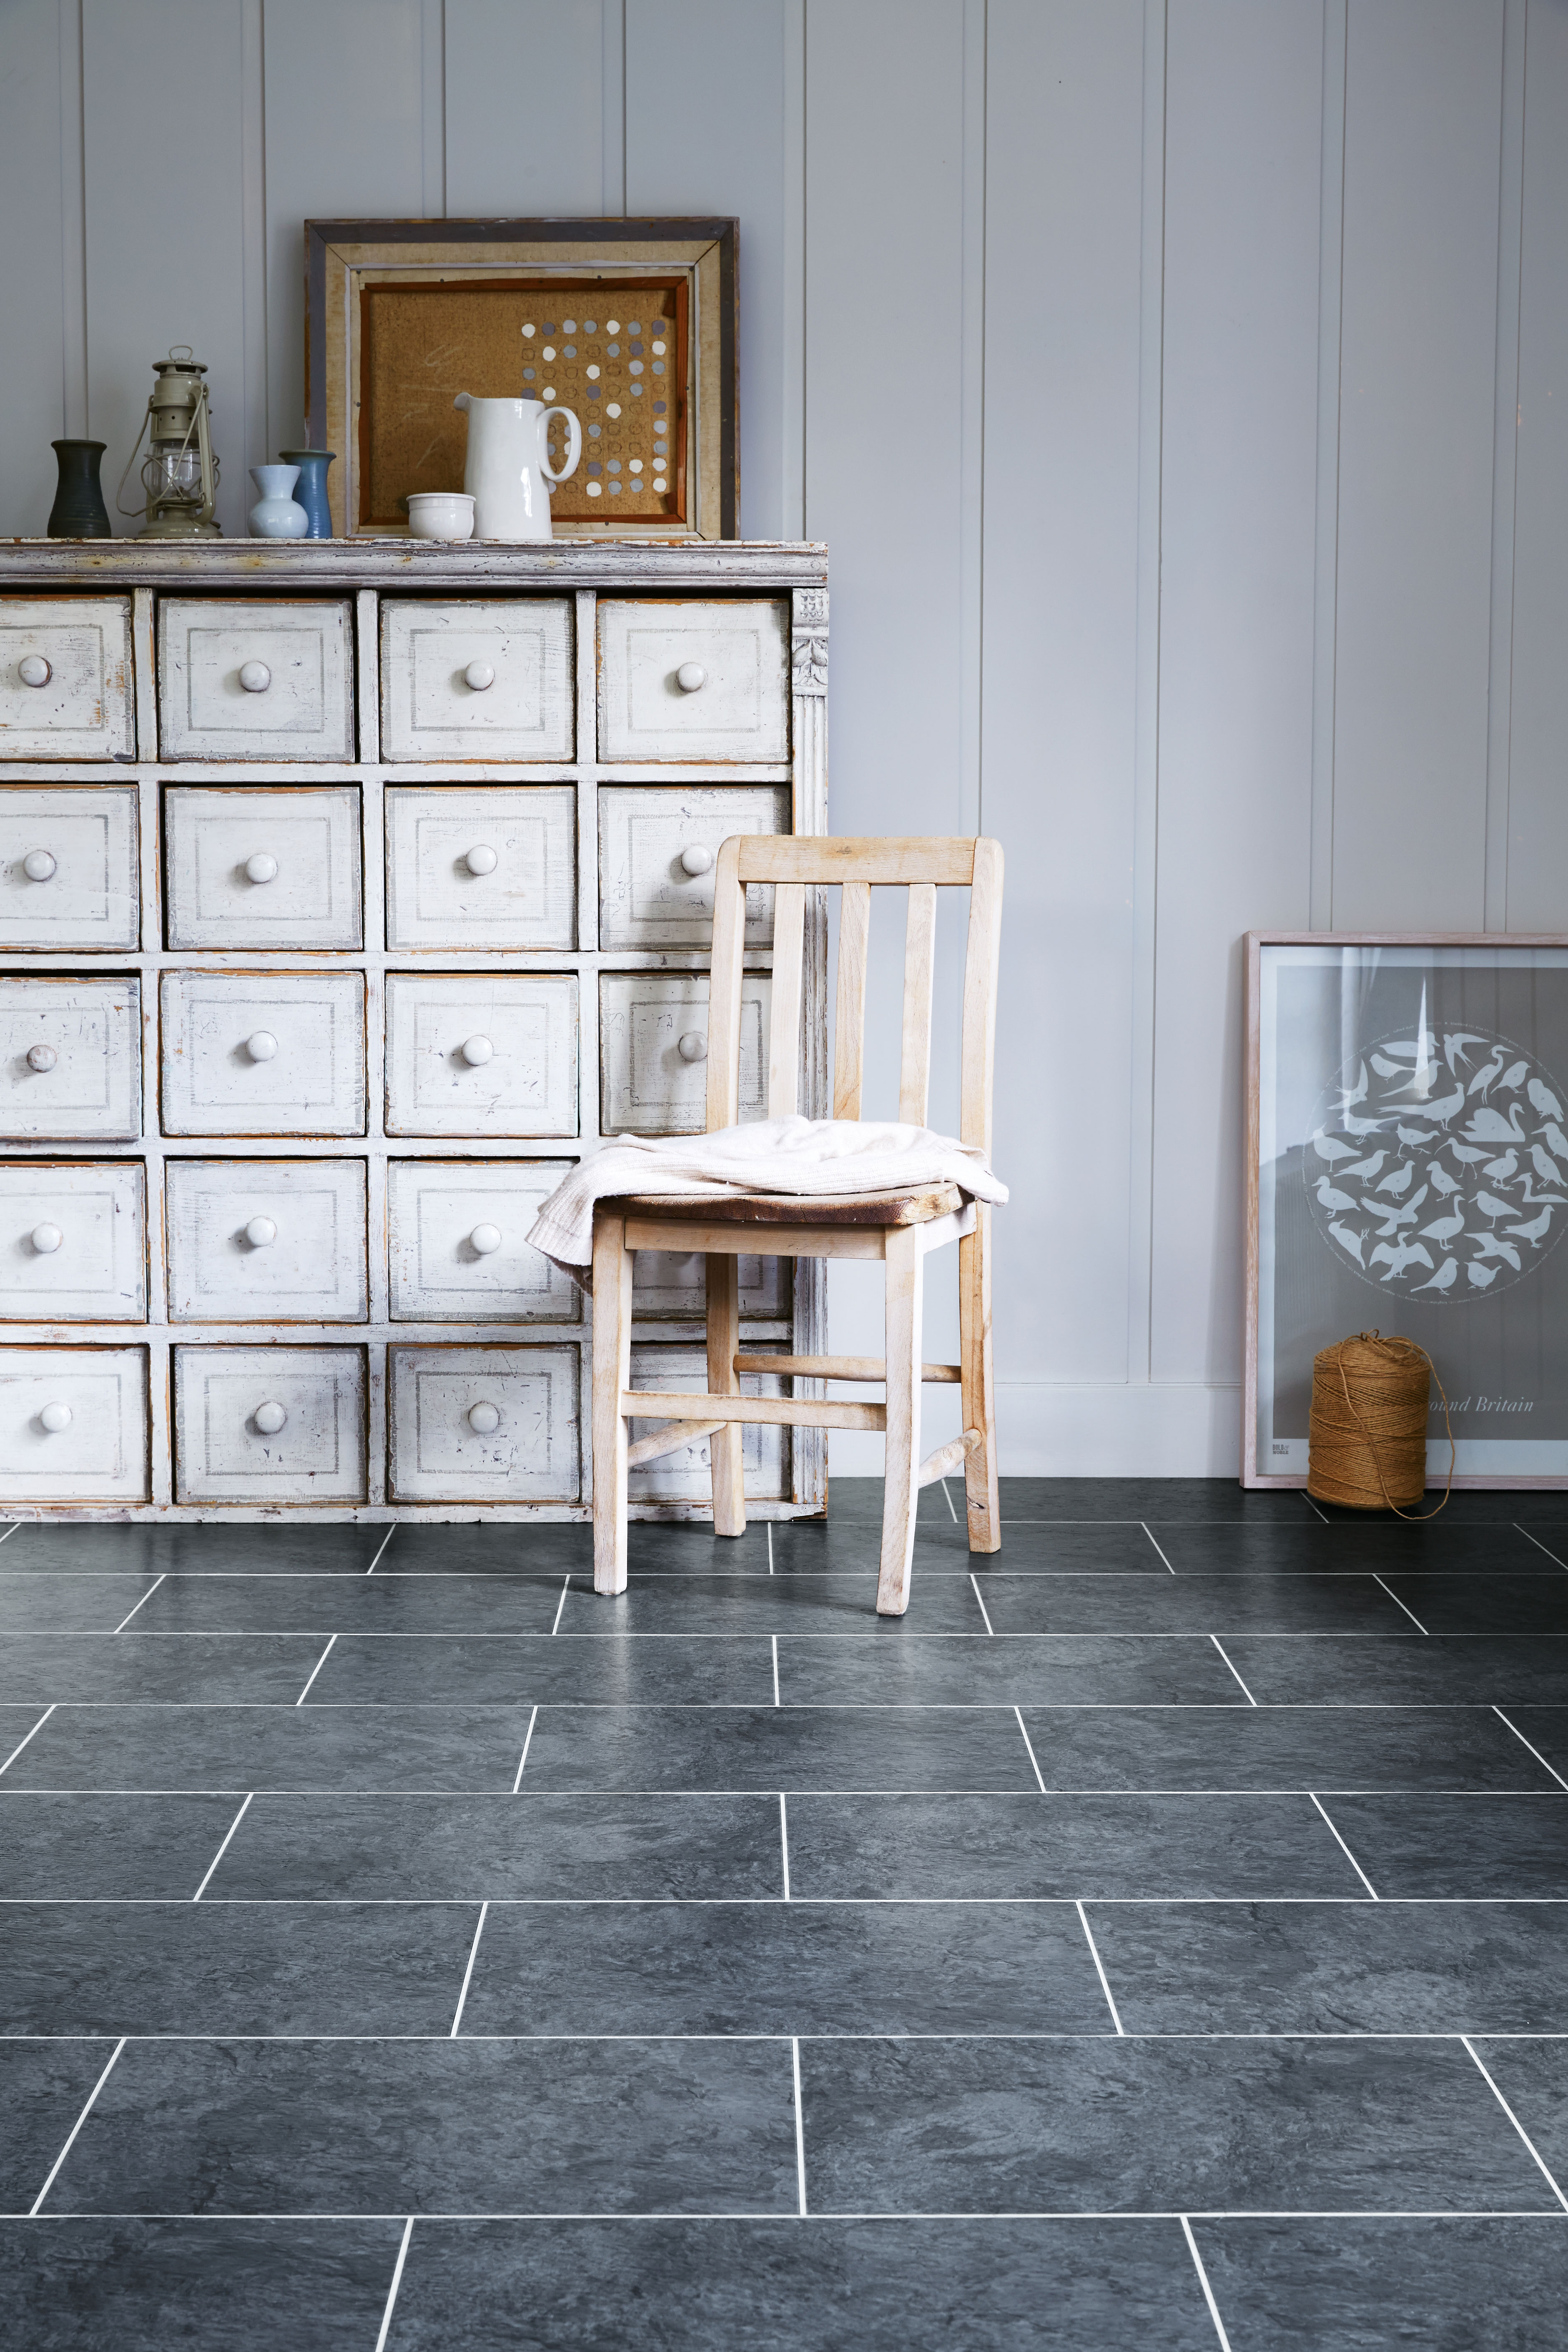 SS5S7501-Monmouth-Slate-12x18-AR0SMB14-Mirabelle-Creme-Stripping-May-2014